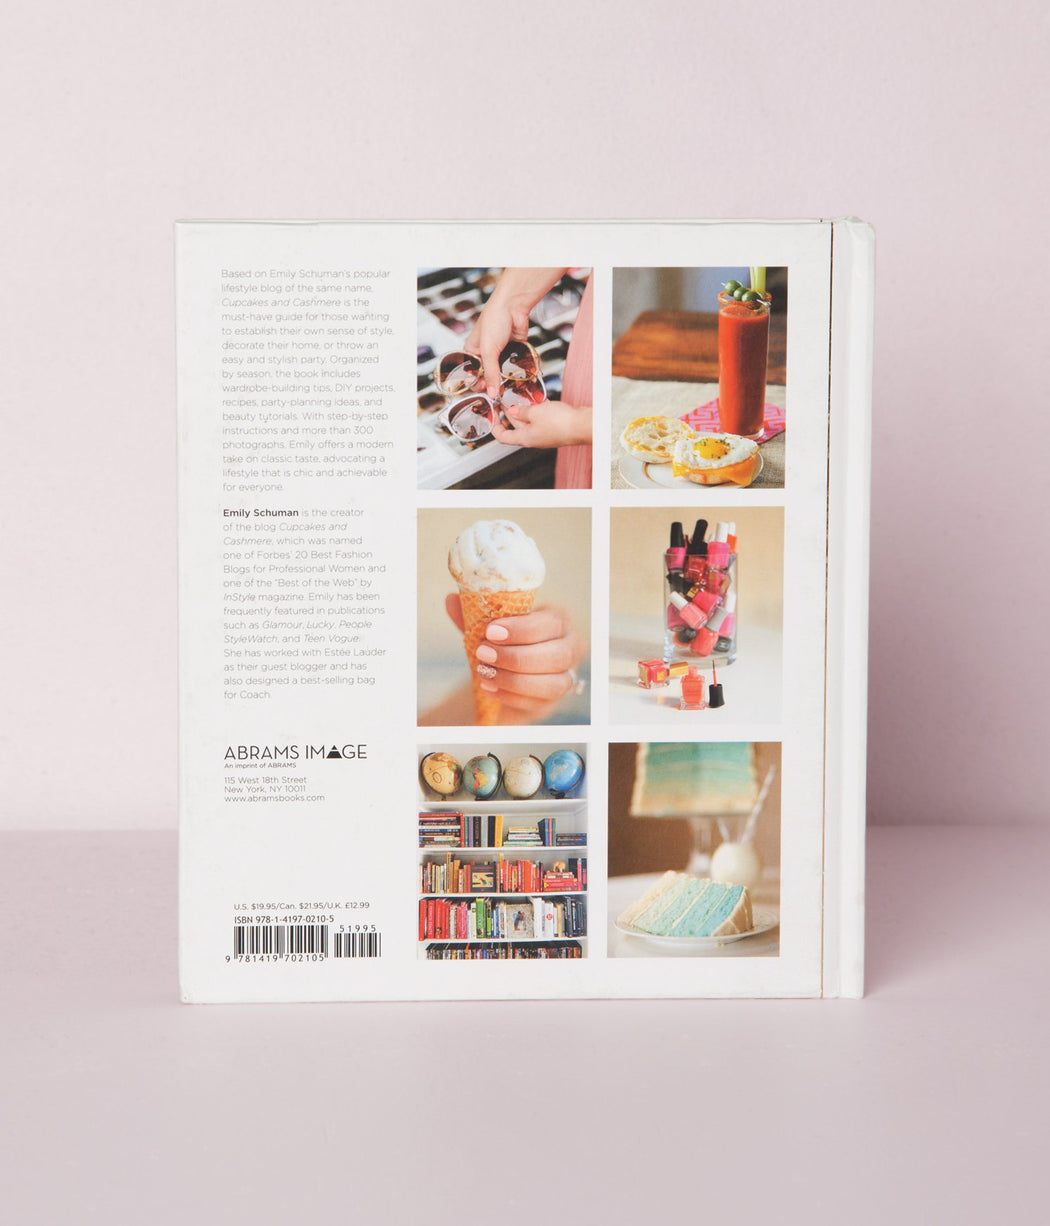 Emily Schuman S Lifestyle Blog Diy Projects Beauty How Tos Recipes